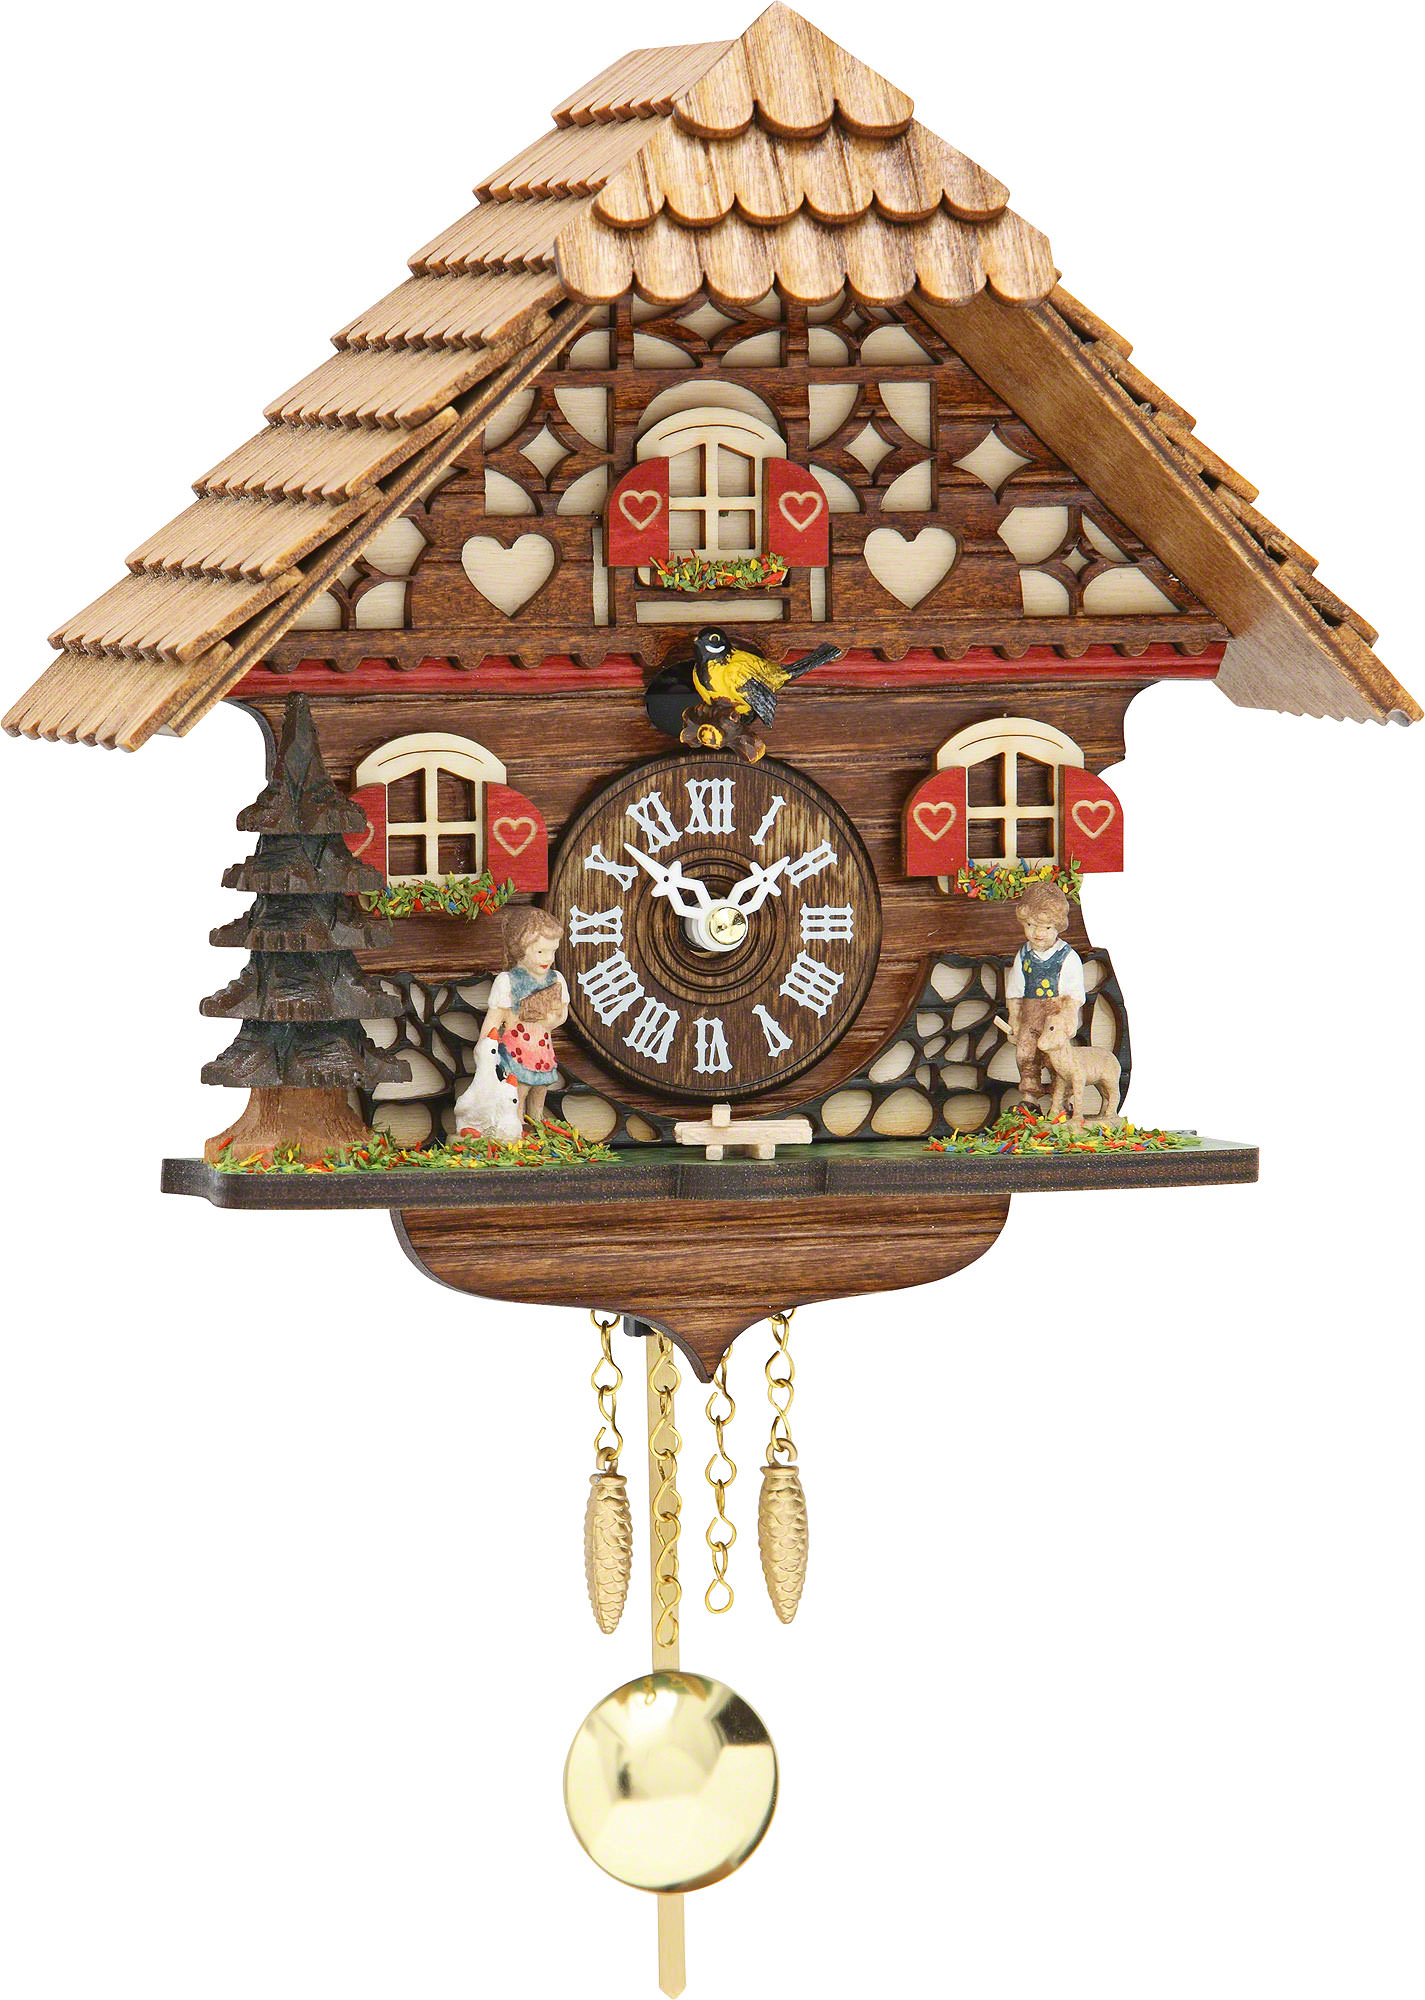 Cuckoo clock kuckulino quartz movement black forest pendulum clock style 19cm by trenkle uhren - Cuckoo clock pendulum ...